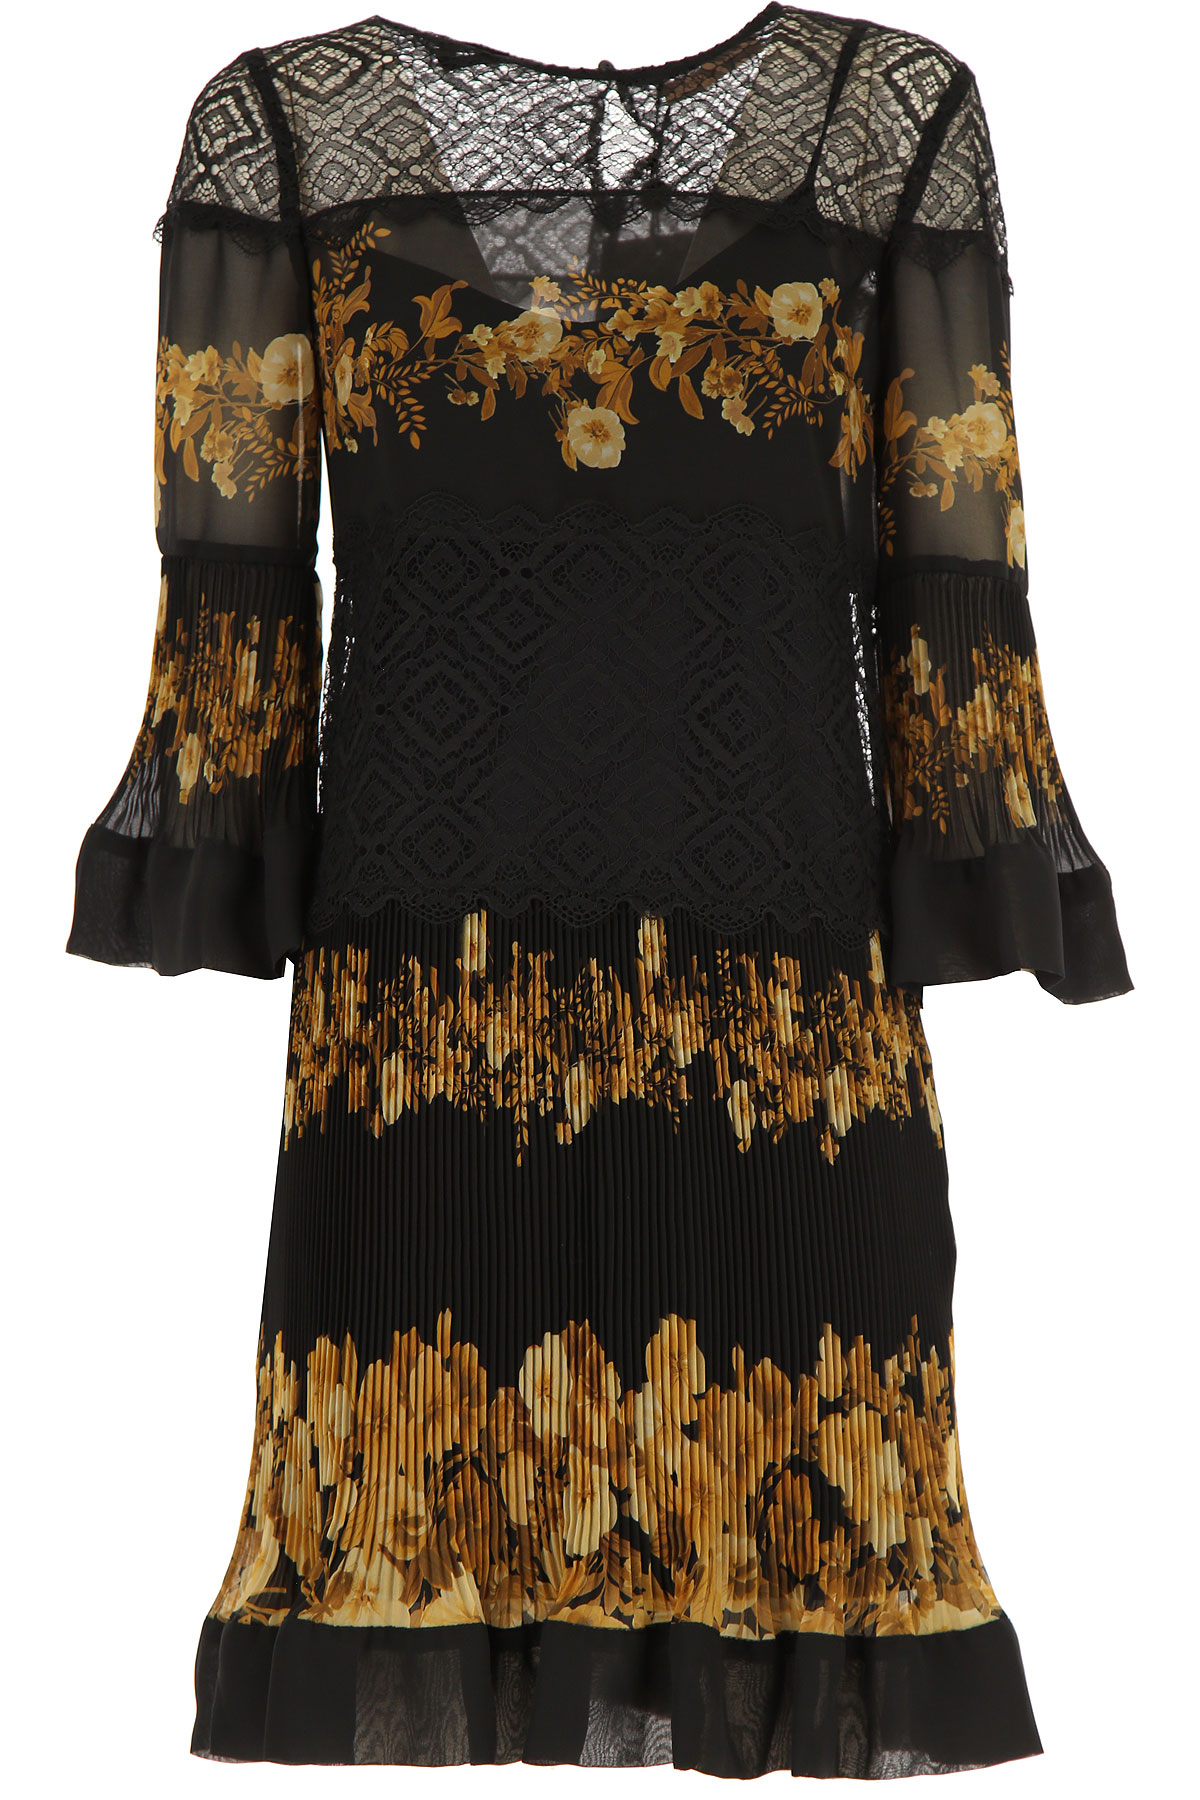 Twin Set by Simona Barbieri Dress for Women, Evening Cocktail Party On Sale, Black, polyester, 2019, 1 (S - 40/42) 2 (M - 42/44) 3 (L - 44/46)